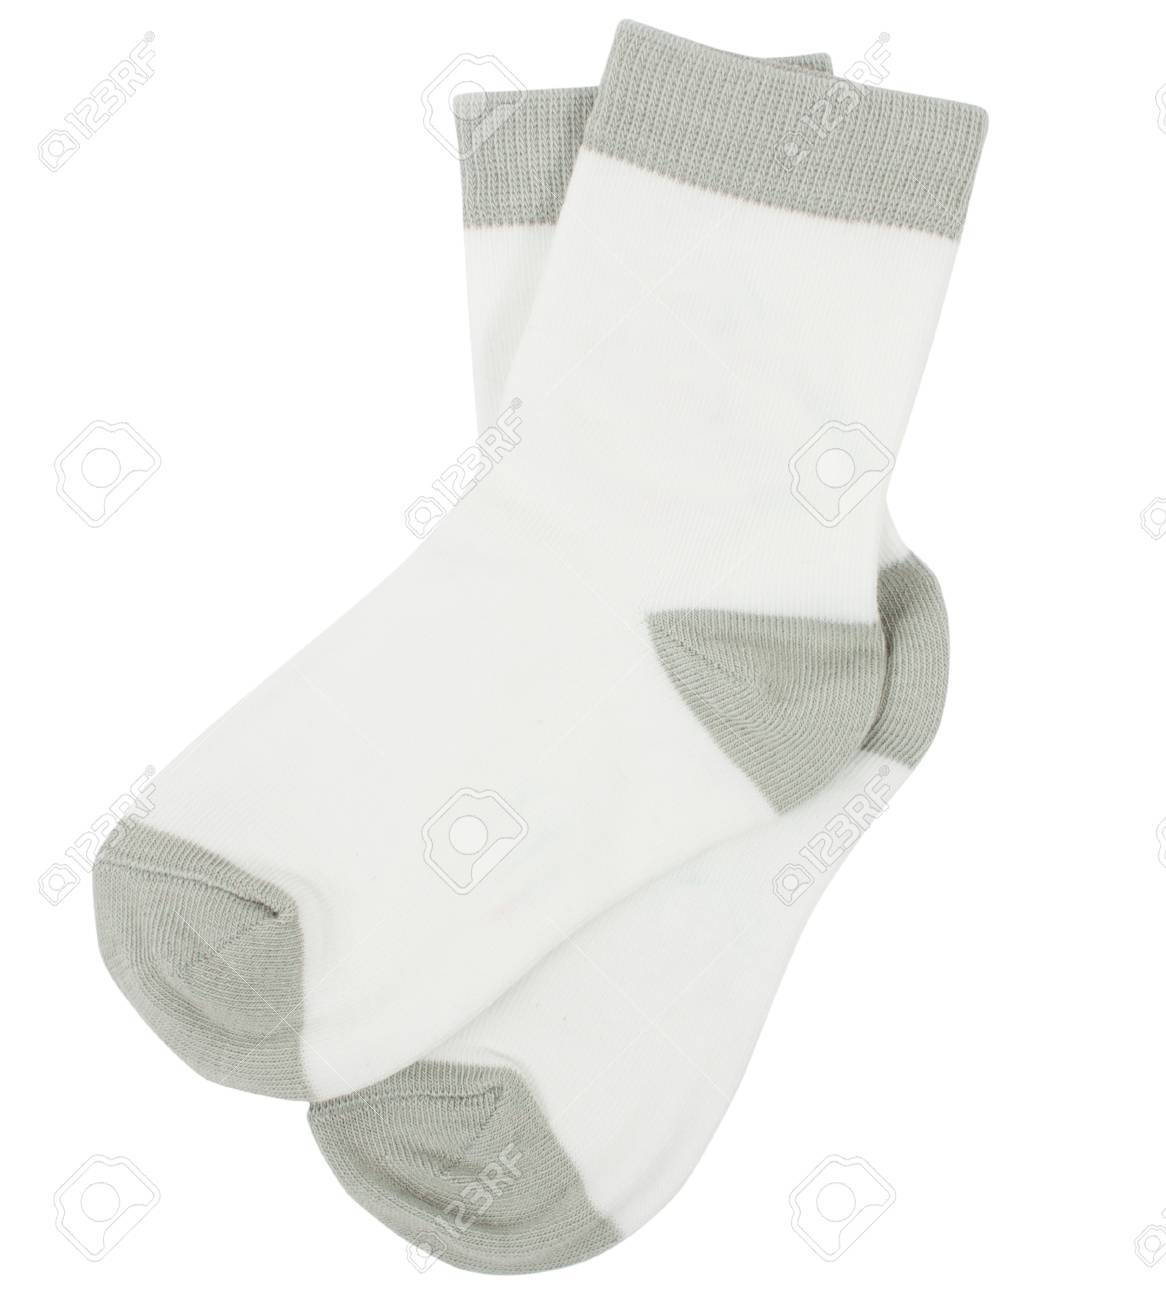 Pair of socks. Isolated on a white background. - 39511016